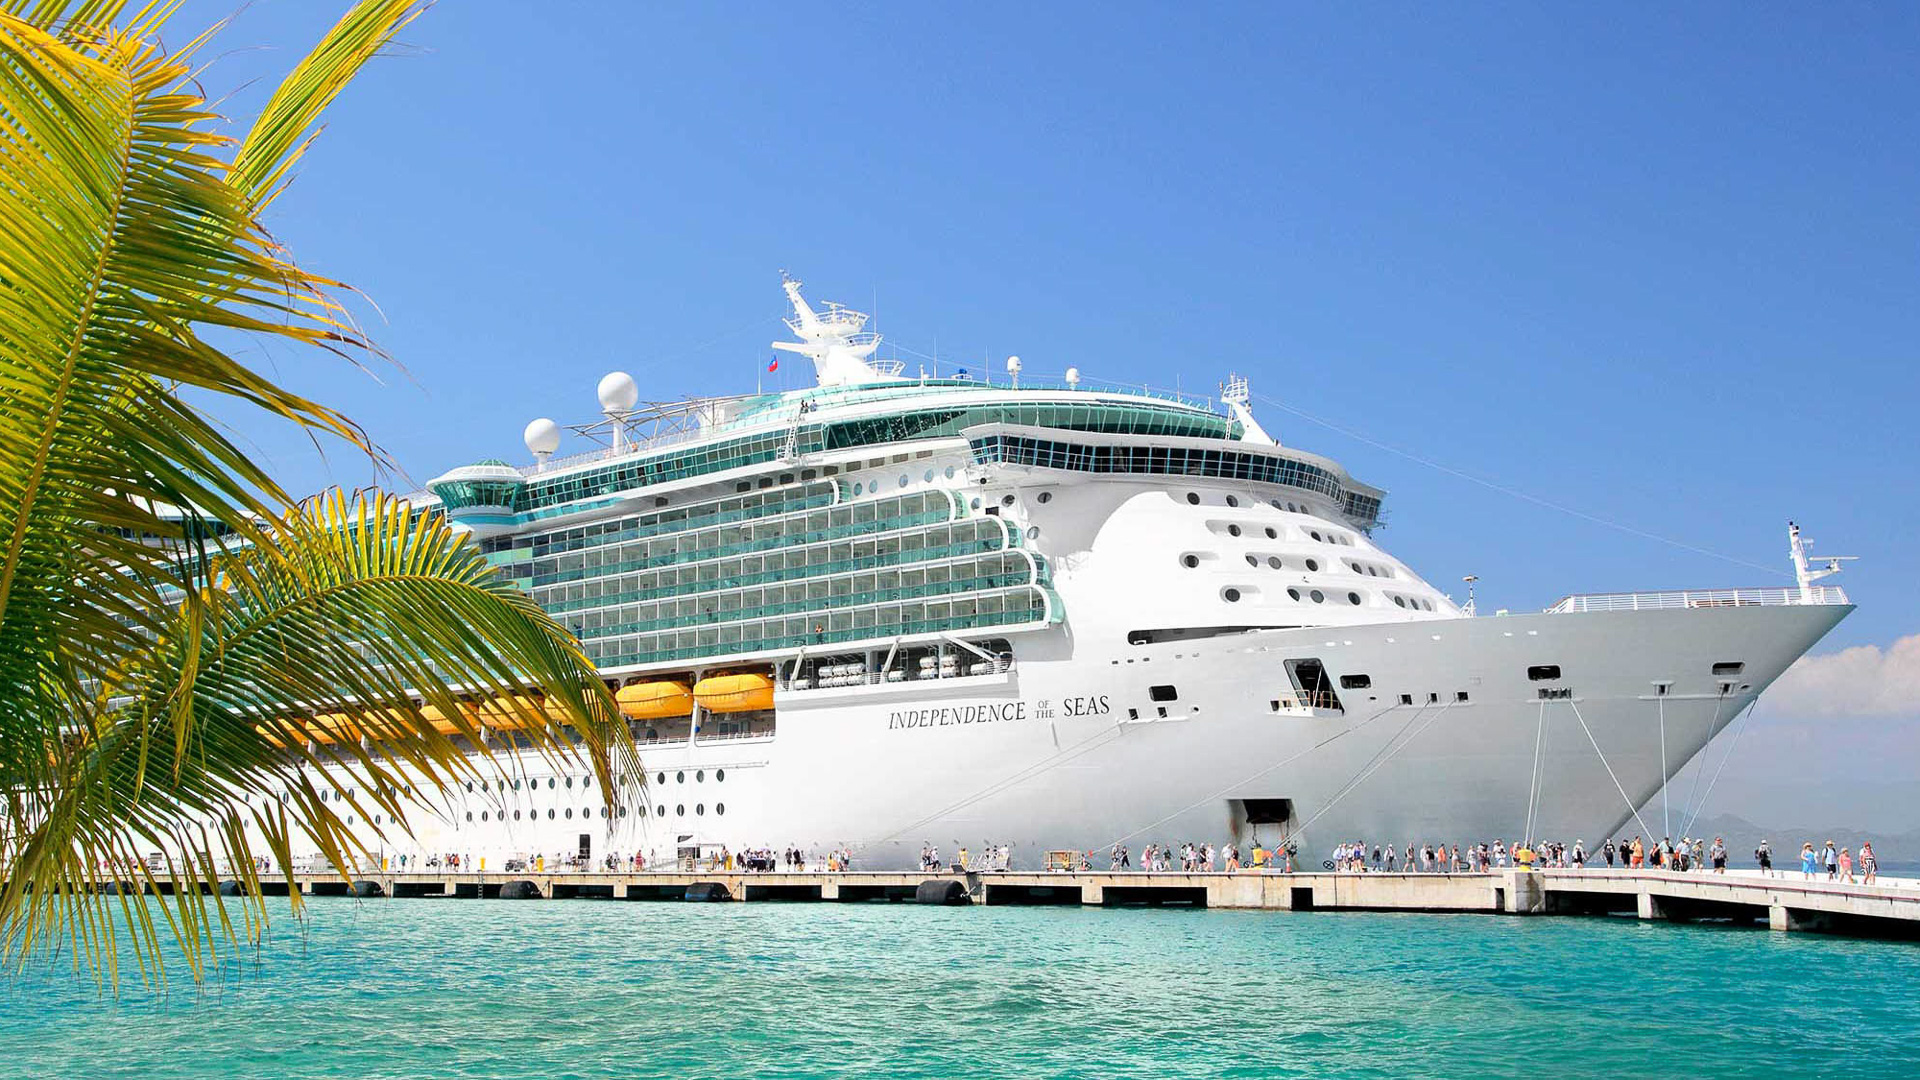 "Slide 7 of 8: If you want to get the best price on a cruise, you need to do some planning. ""You can get an excellent deal by booking a year out,"" said Carolyn Spencer Brown, editor-in-chief of Cruise Critic. This applies regardless of the time of year you plan to cruise. You won't necessarily get a steal, but you're likely to get the room of your choice at a good value — which is important if you're traveling as a family. The cruise lines also tend to throw in extras — such as spa packages, excursion packages, drinks packages or free airfare — if you book well in advance, Brown said. Savings from booking early will vary depending on the cruise. To get the best value, enlist a travel agent who specializes in cruises to help you book your trip. ""The service they provide at no cost is amazing,"" Brown said."